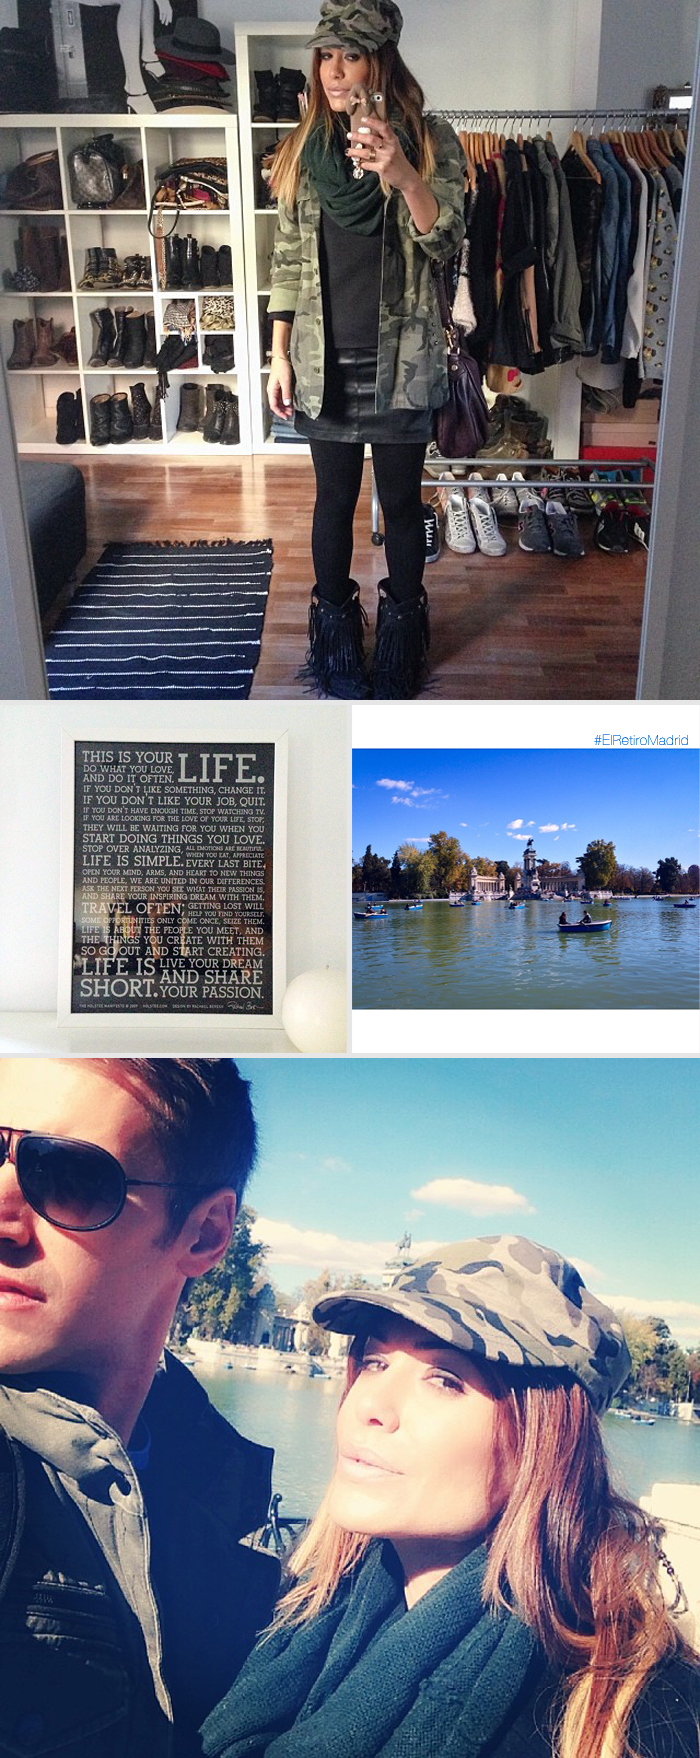 notes of the week barbara crespo tumblr instagram instavideo pics photography fashion blogger